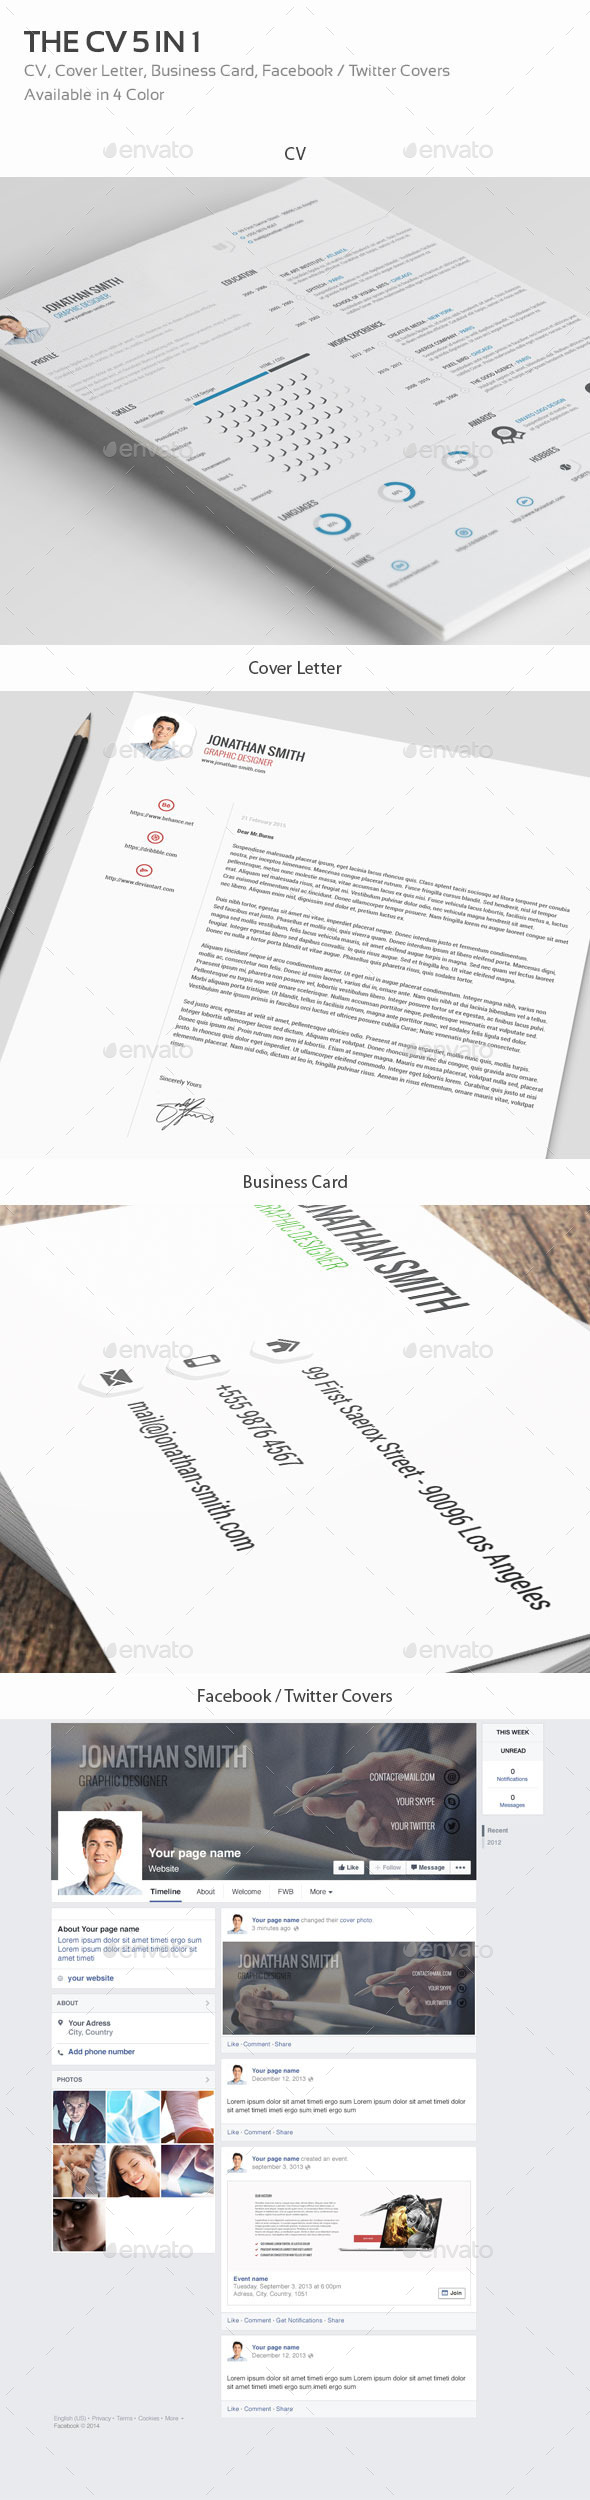 GraphicRiver The CV 5IN1 4 Color 10520614